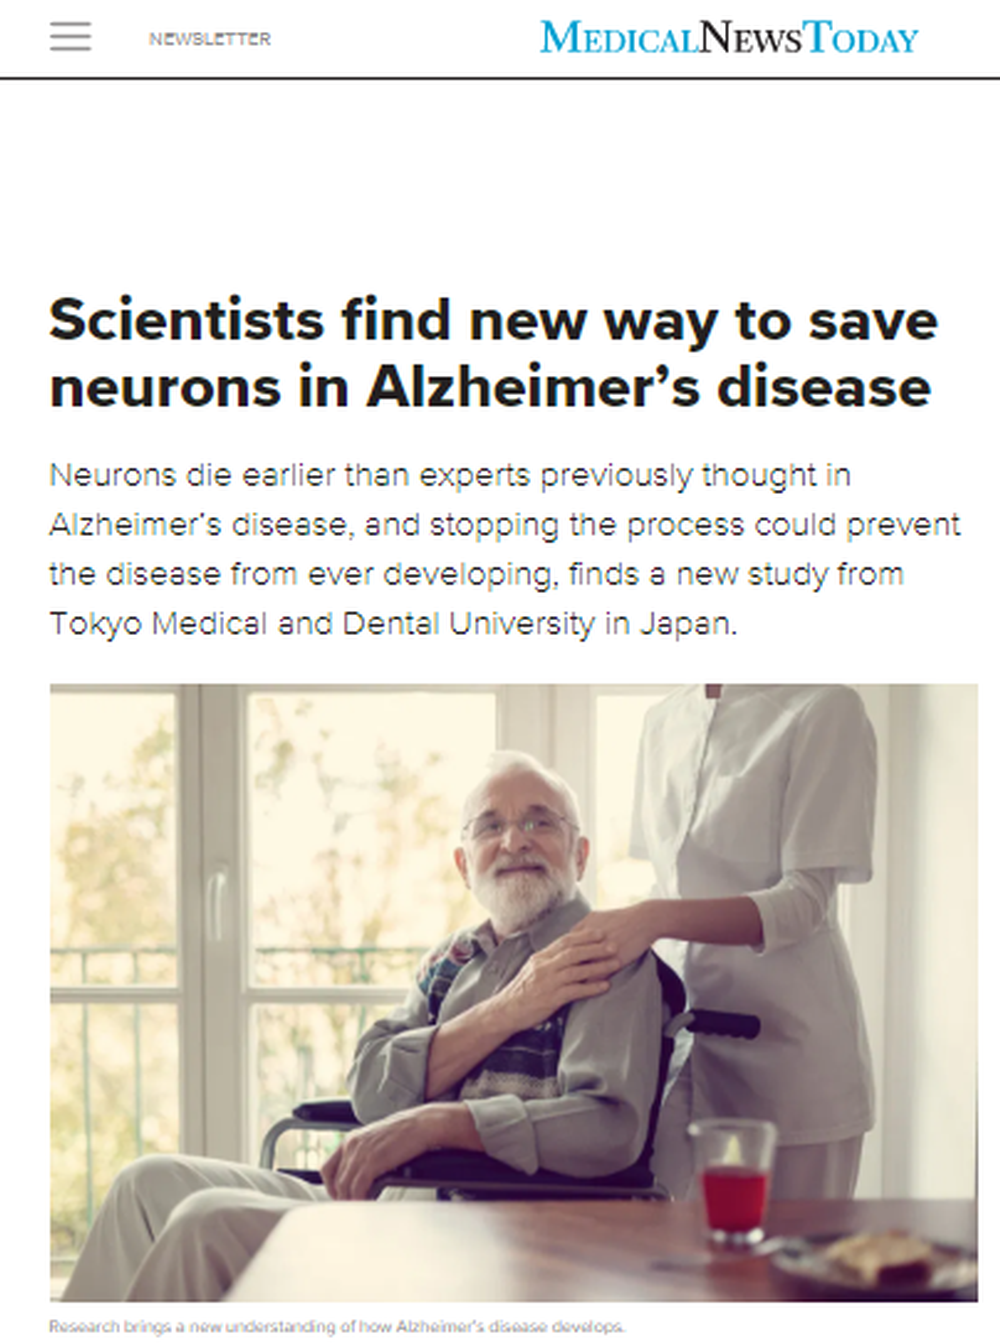 Scientists find new way to save neurons in Alzheimer's disease.png